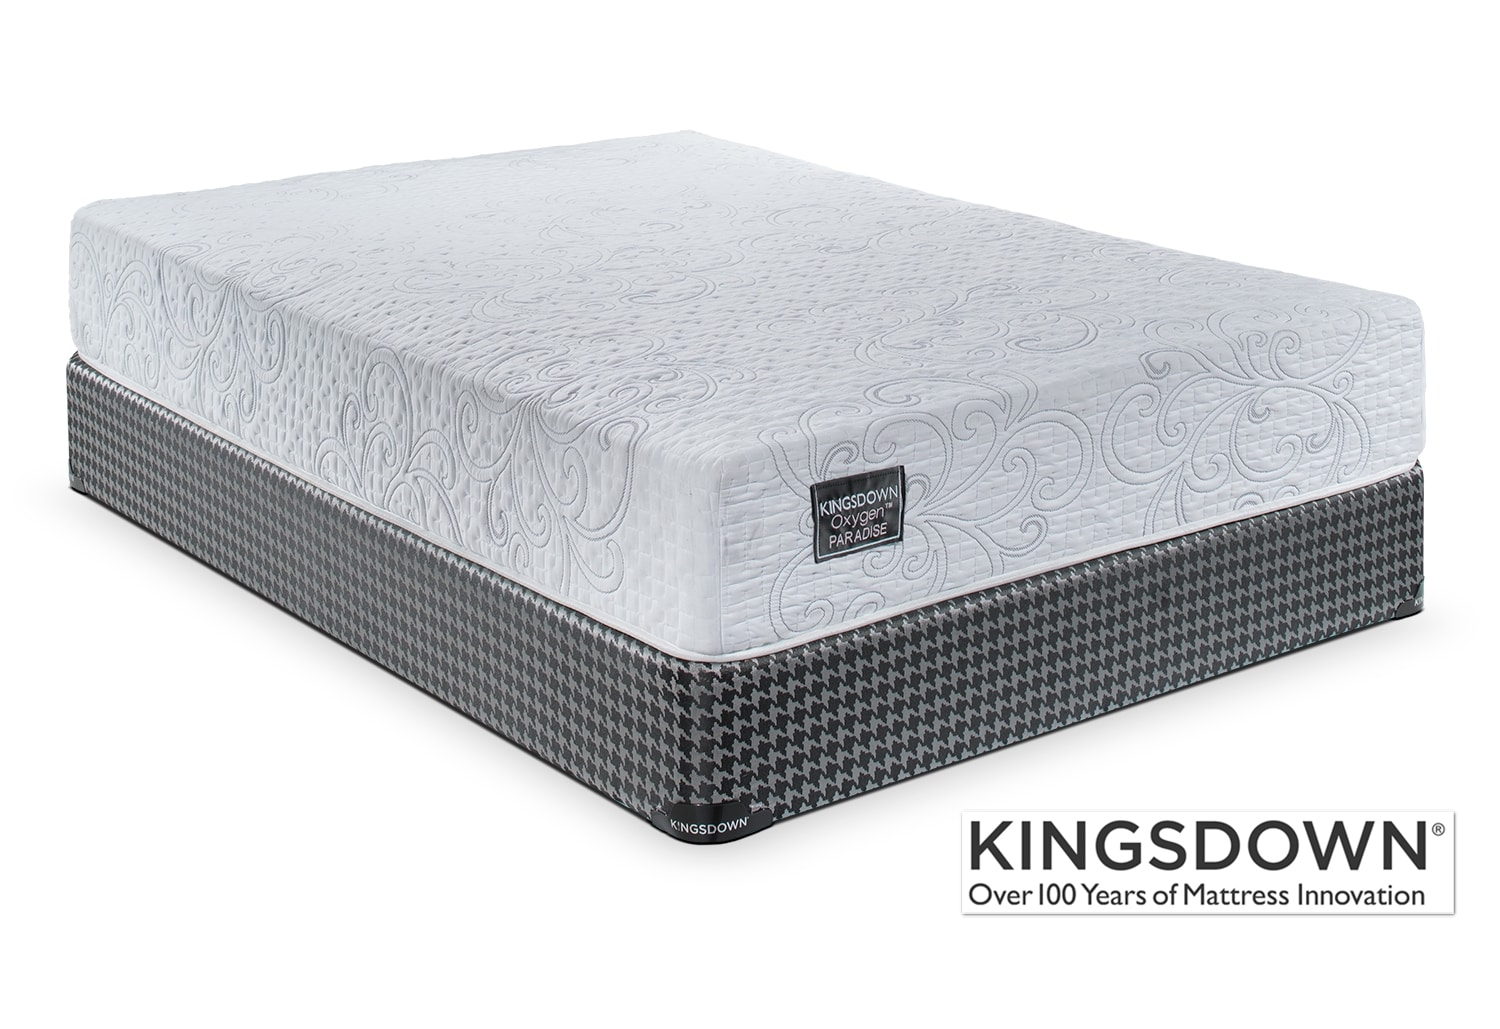 Mattresses and Bedding - Kingsdown Paradise Queen Mattress/Boxspring Set